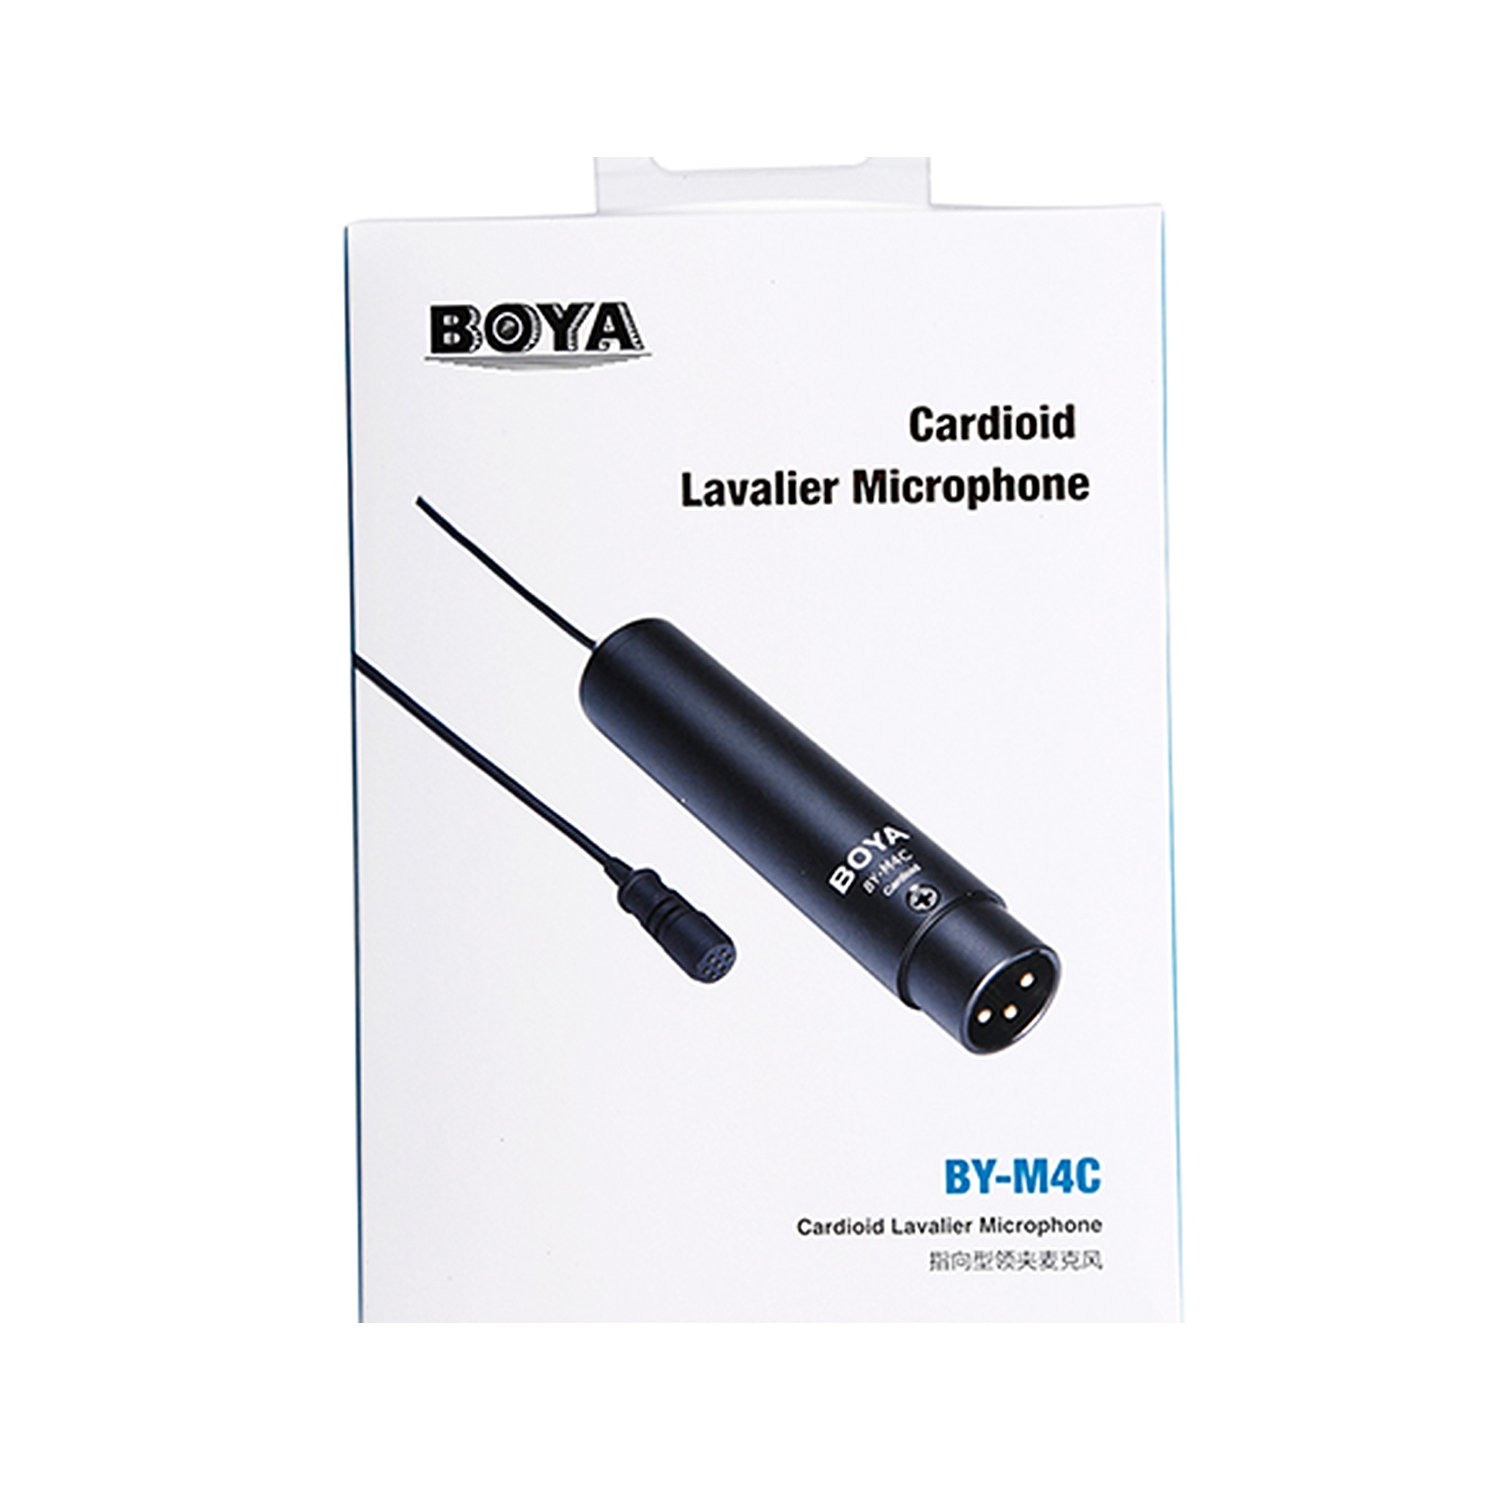 BOYA BY-M4C 3 PIN XLR Phantom Power Cardioid Clip-On Lavalier Microphone for Canon Sony Panasonic Camcorders ZOOM H4n H5 H6 TASCAM Audio Recorders